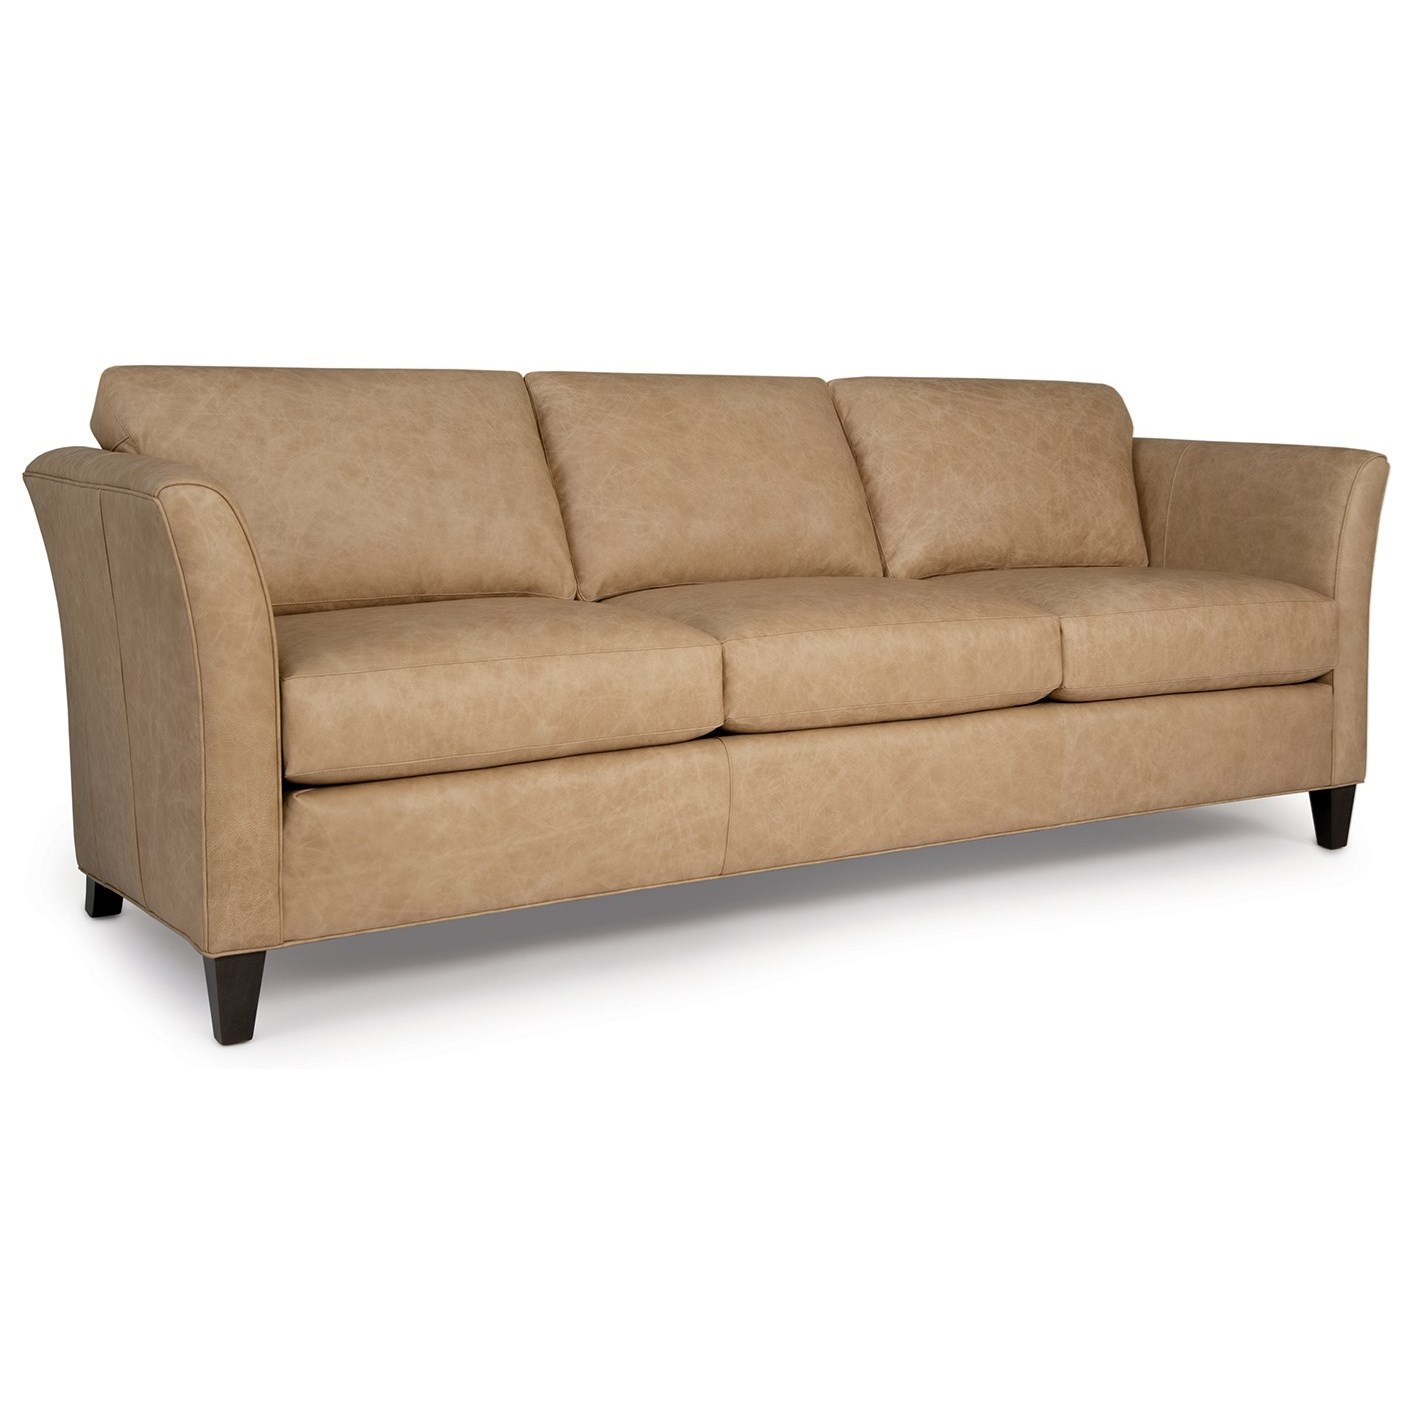 266 Sofa by Smith Brothers at Rooms for Less